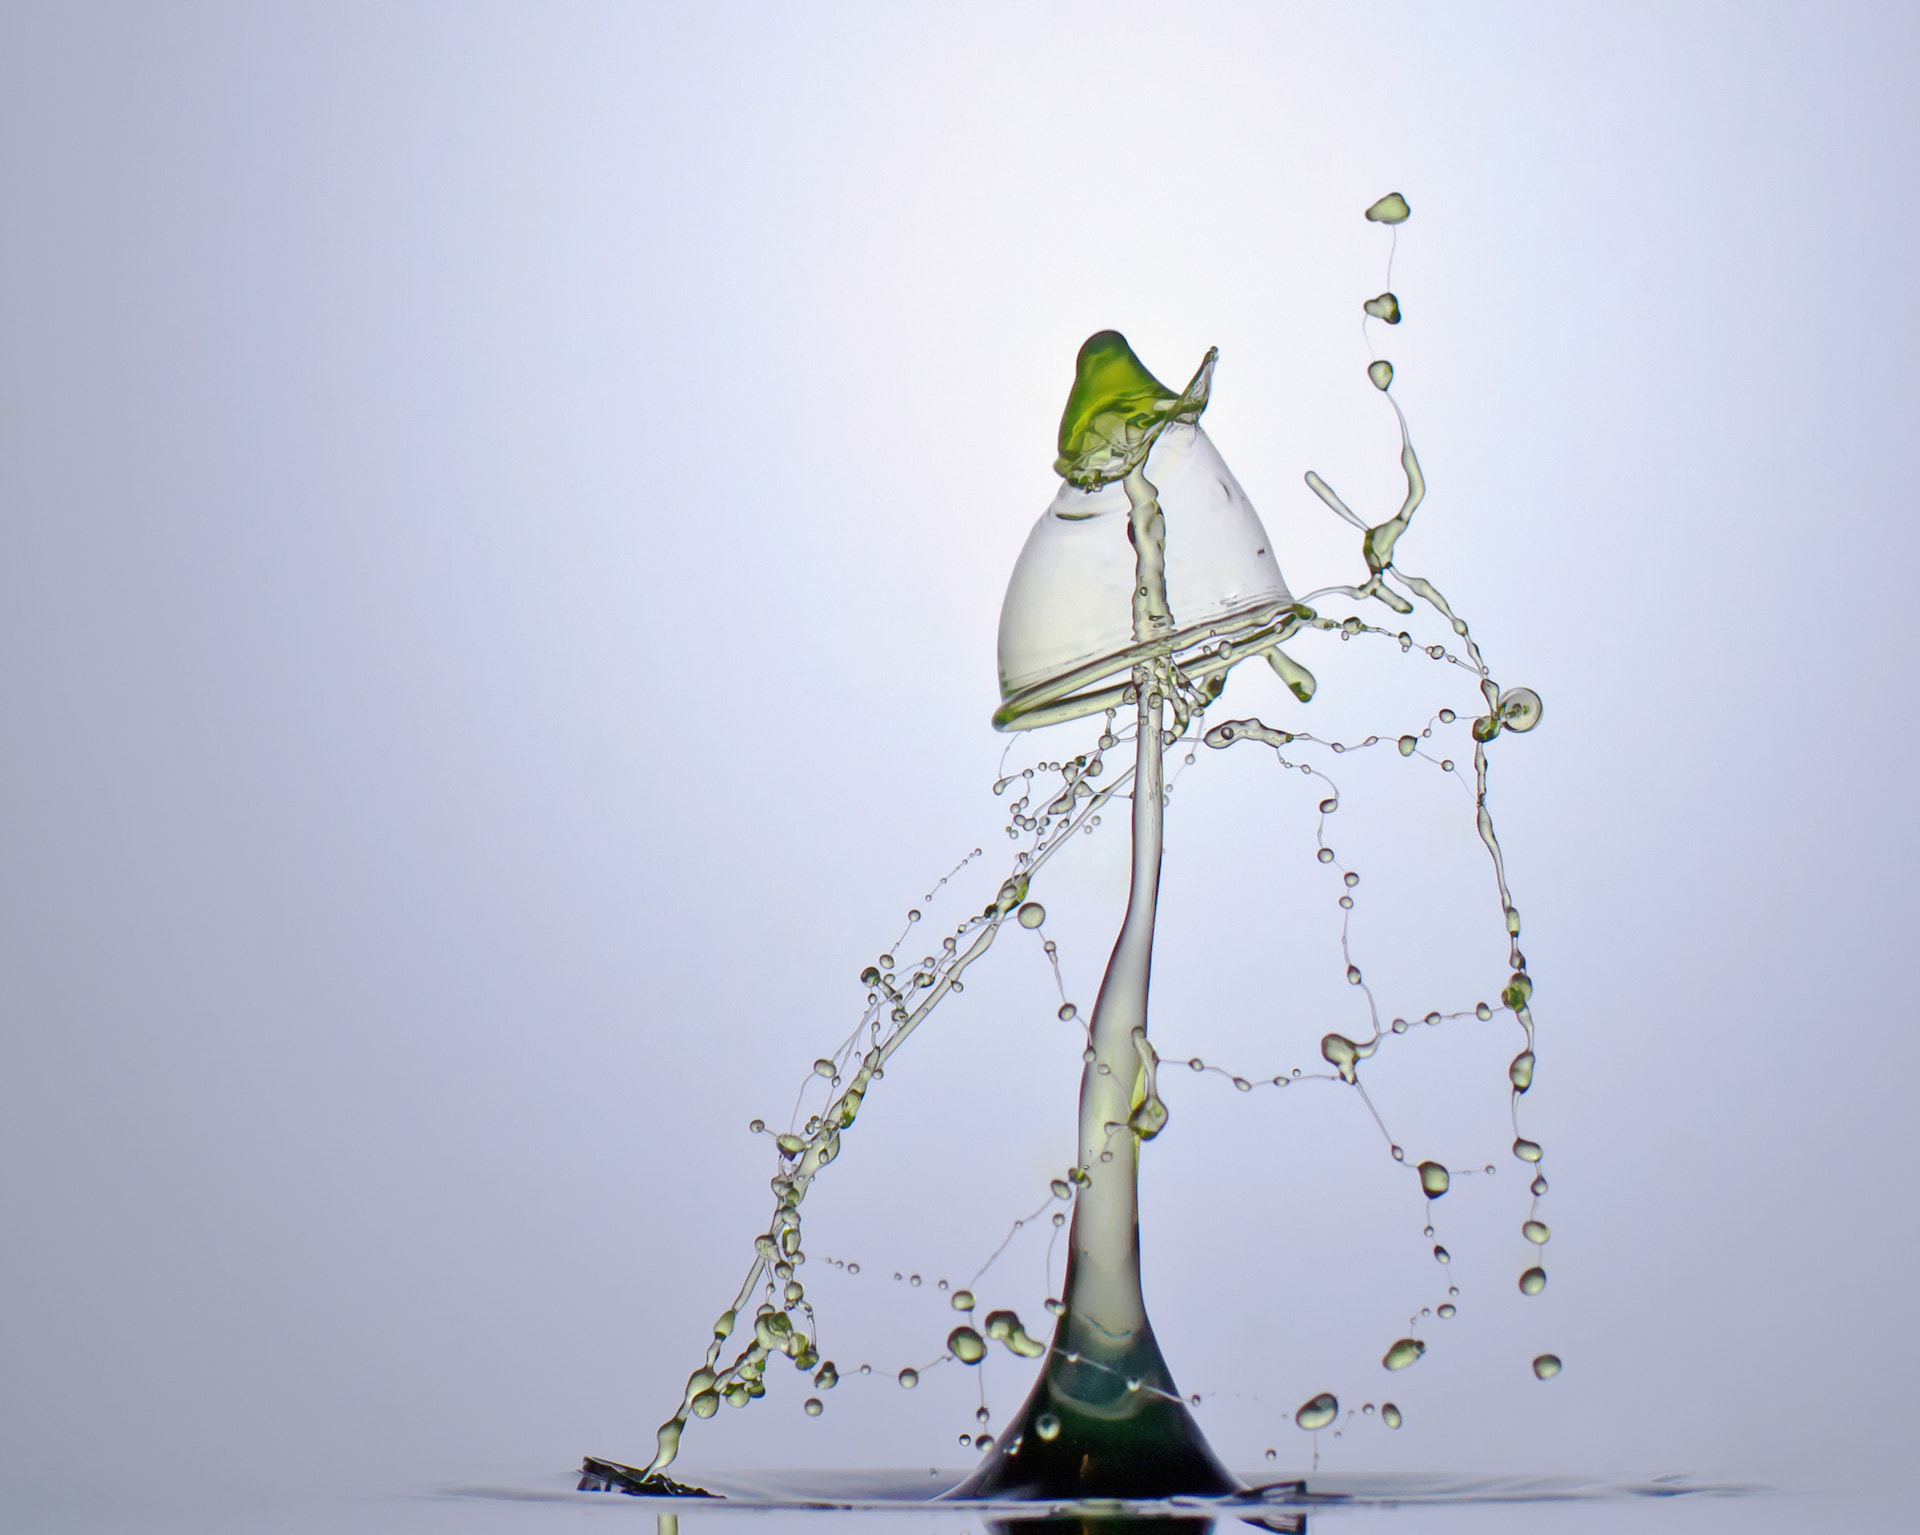 Photograph many drops by Michael Eggers on 500px